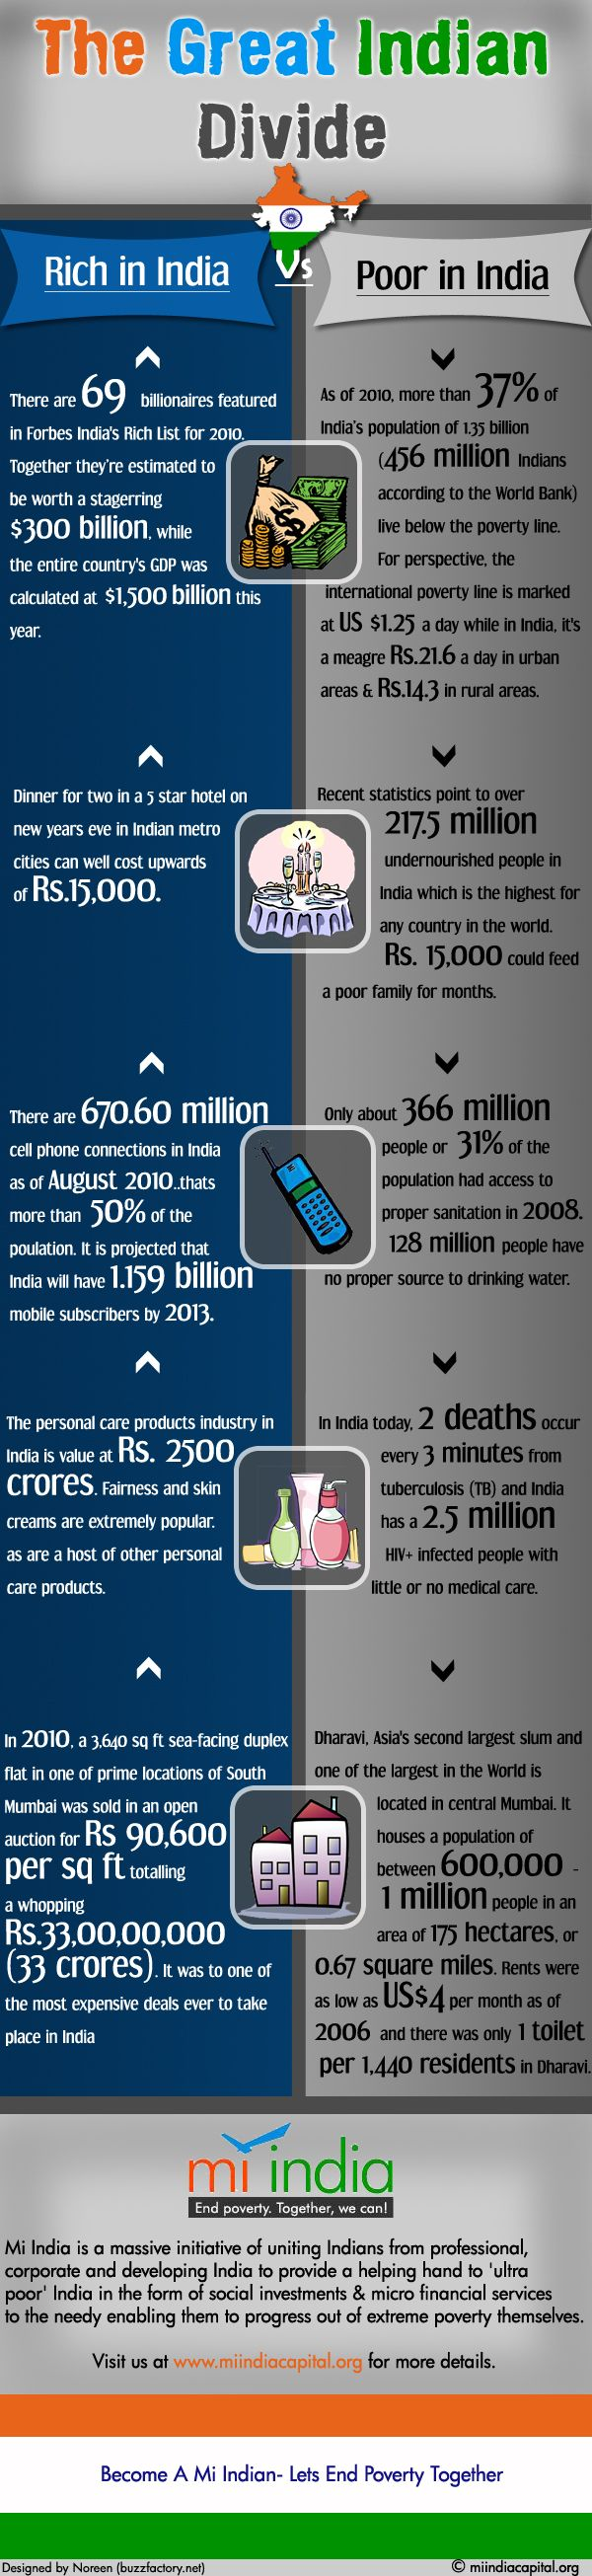 The Great Indian Divide: Rich in India Versus Poor in India [INFOGRAPHIC]